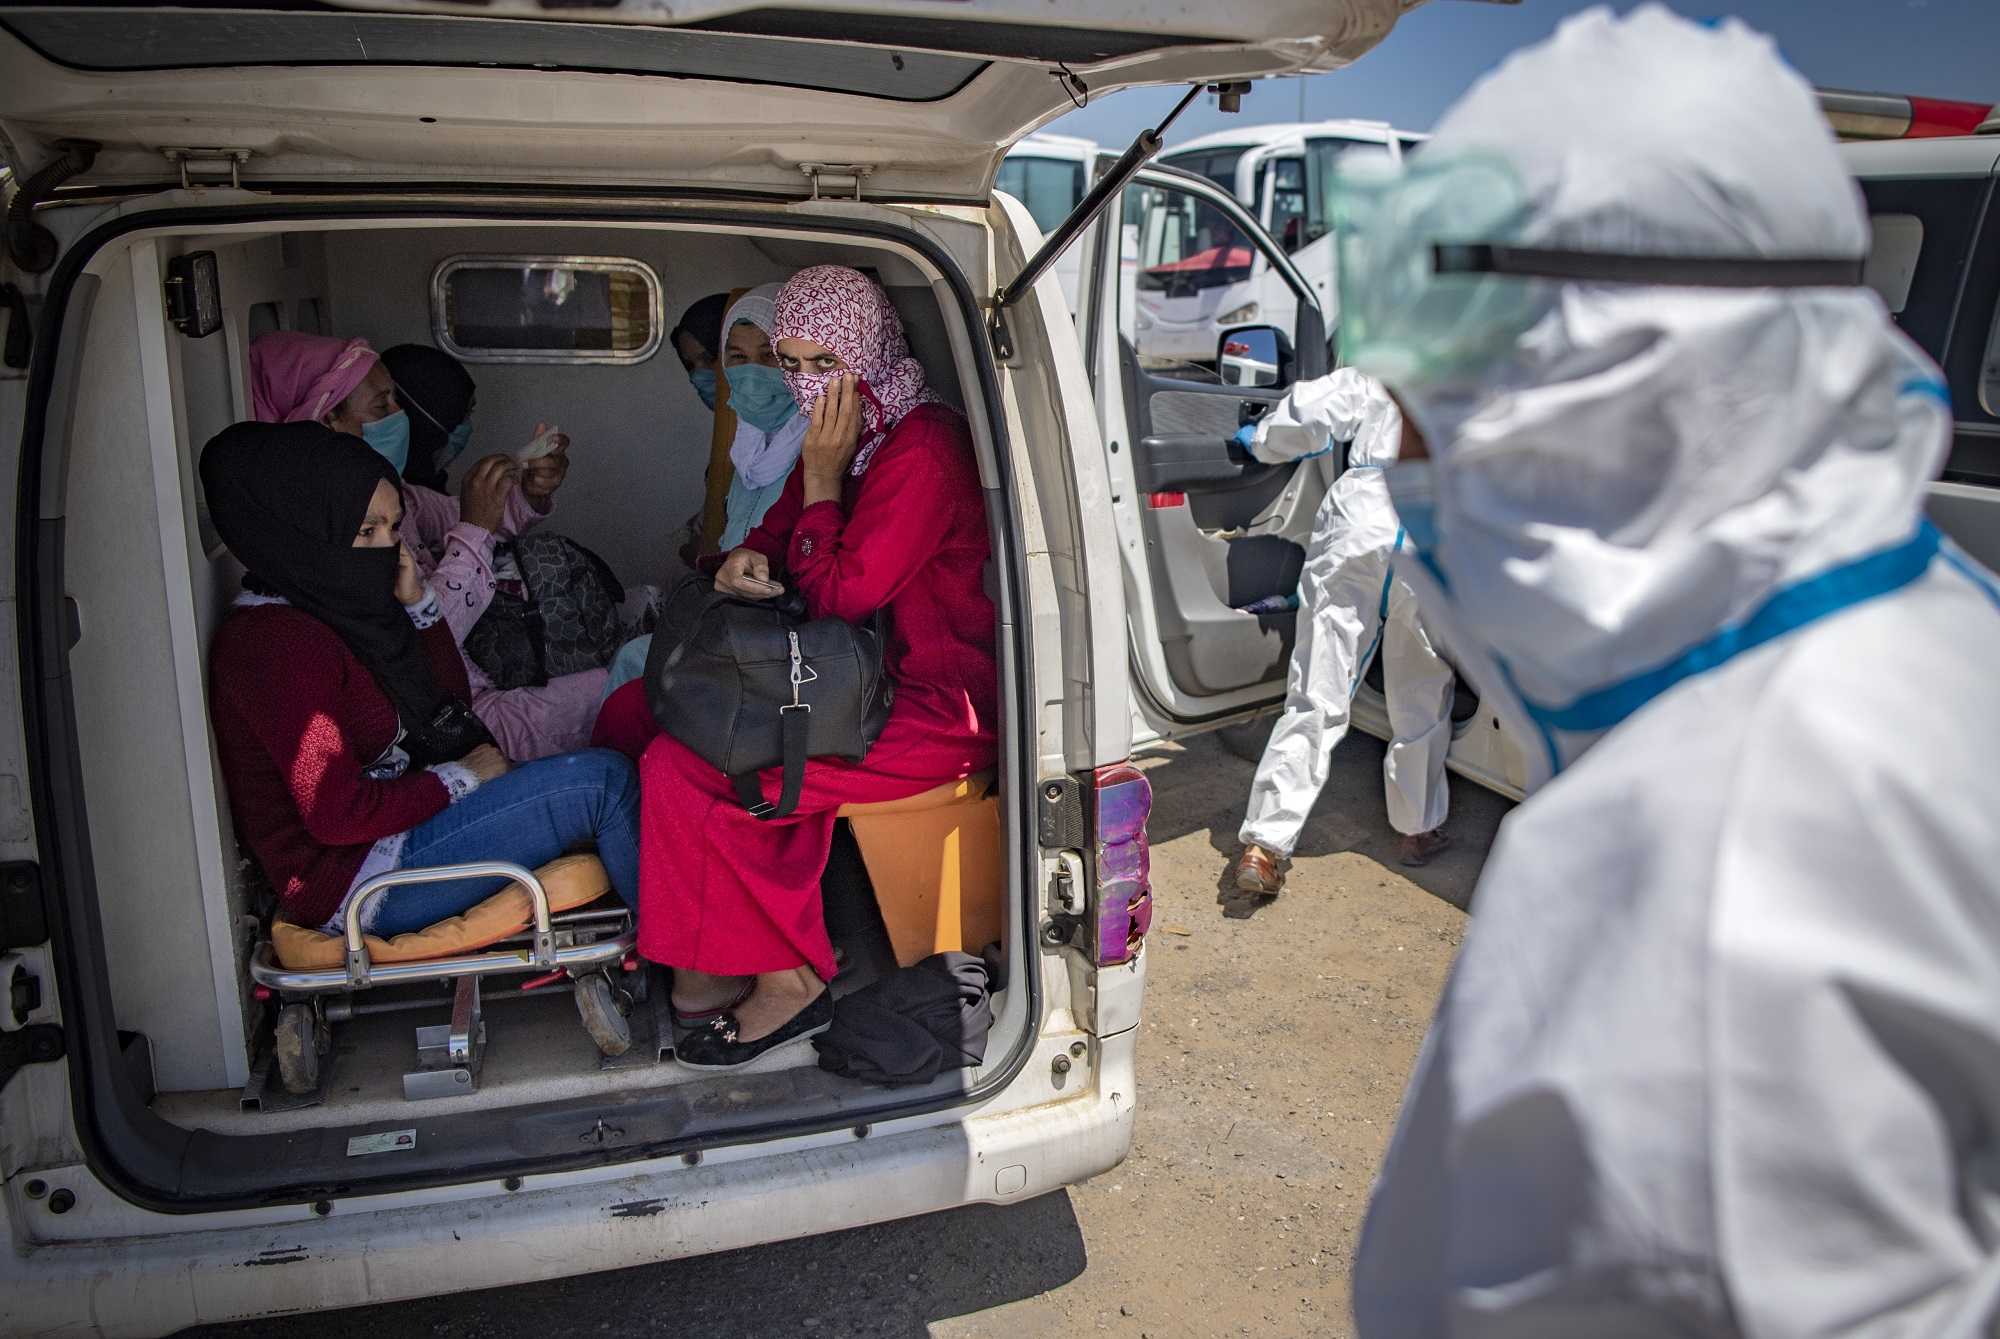 Moroccans, who tested positing for Covid-19, arrive in a parking lot in the town of Moulay Bousselham, north of the capital Rabat, on June 20, 2020, ahead of being transferred to a medical center in another city. - Morocco reported a record single-day rise in novel coronavirus cases on Friday after an outbreak was discovered in red fruit packing plants in a rural area northeast of Kenitra city, prompting Rabat to tighten restrictions in the region.  The North African kingdom reported more than 500 cases on Friday, mainly in Kenitra, having recorded on average fewer than 100 new COVID-19 cases daily since confirming its first cases in early March. (Photo by FADEL SENNA / AFP)